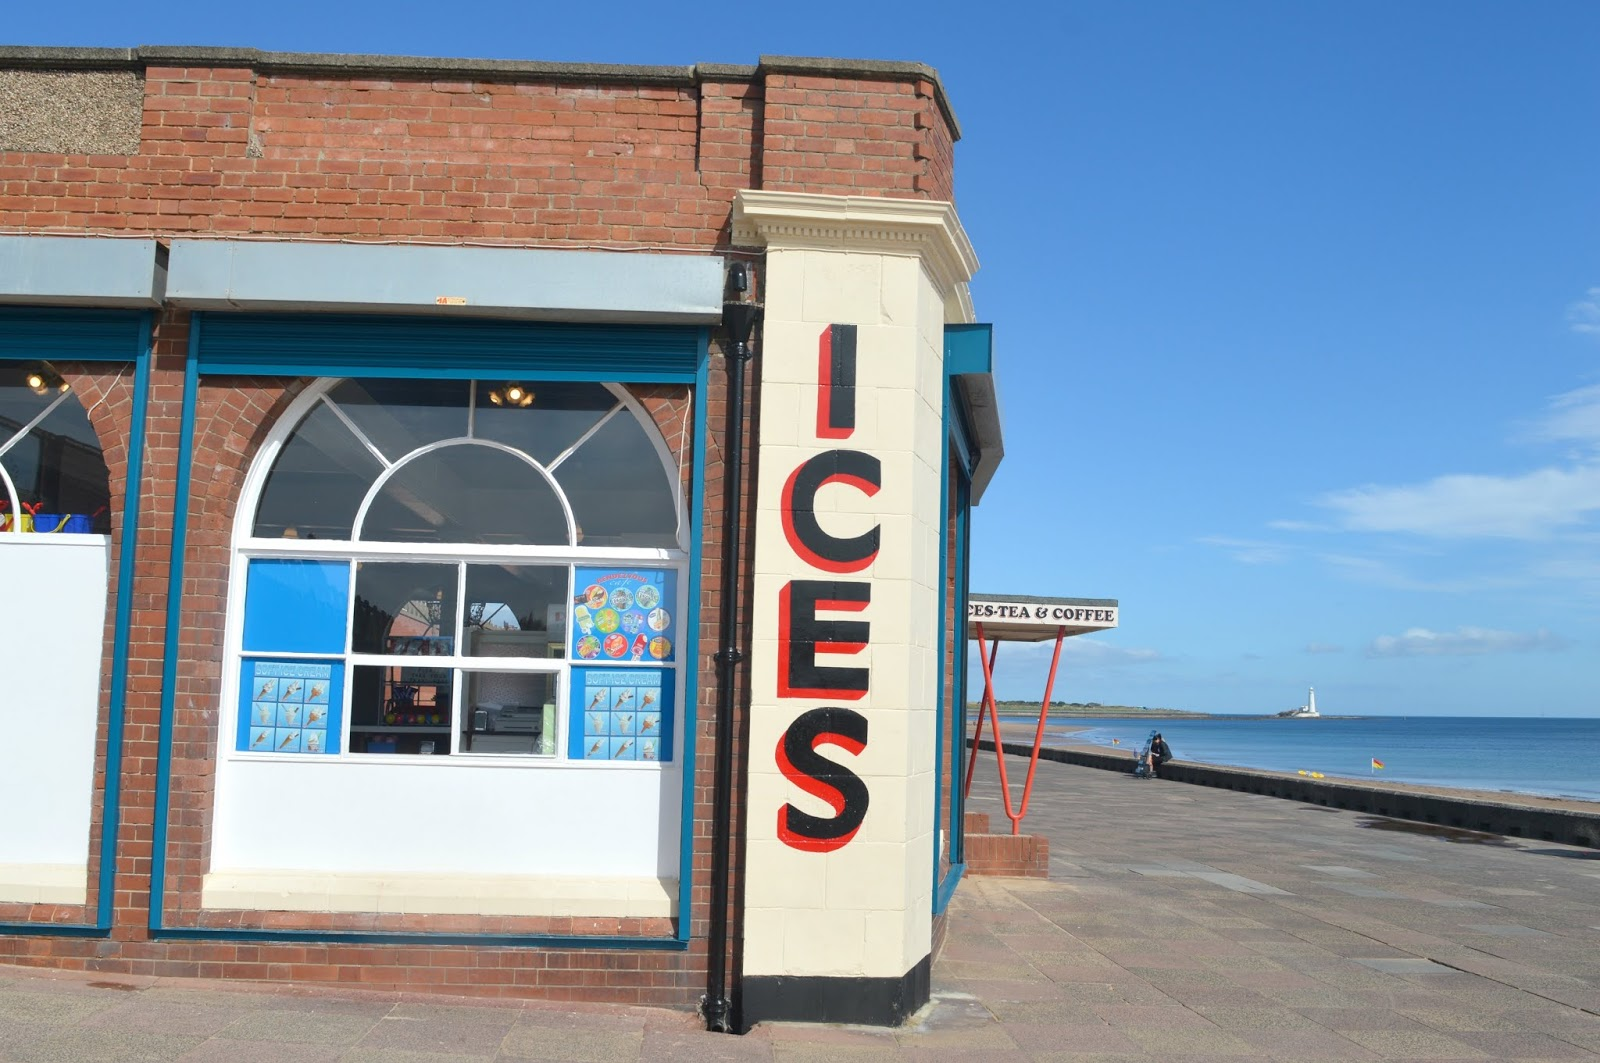 Whitley Bay Ultimate Seaside Destination - Rendezvous Cafe